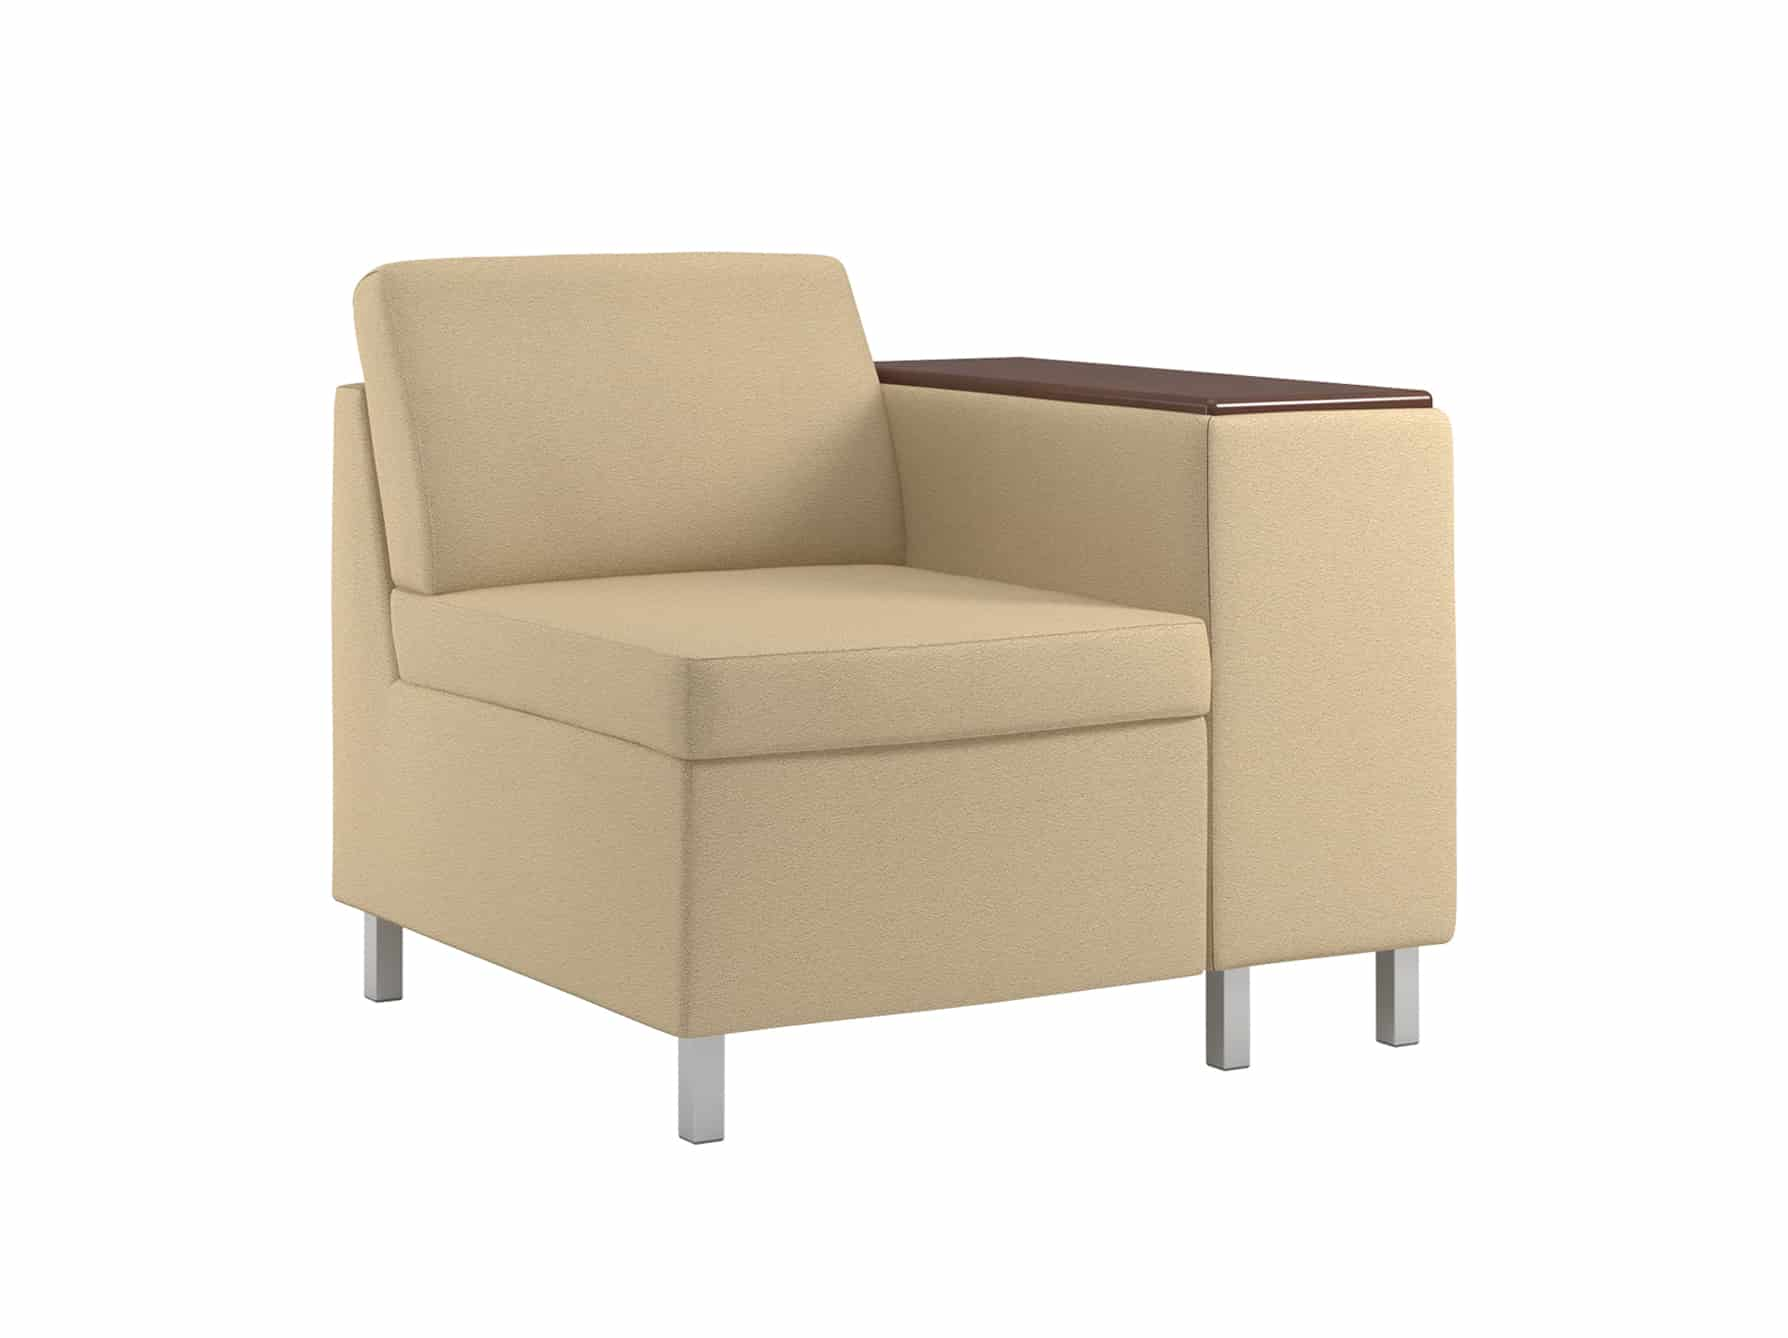 lobby sofa crossword diamond leather look corner chaise with bed rally compose chair 1 table arm sauder education